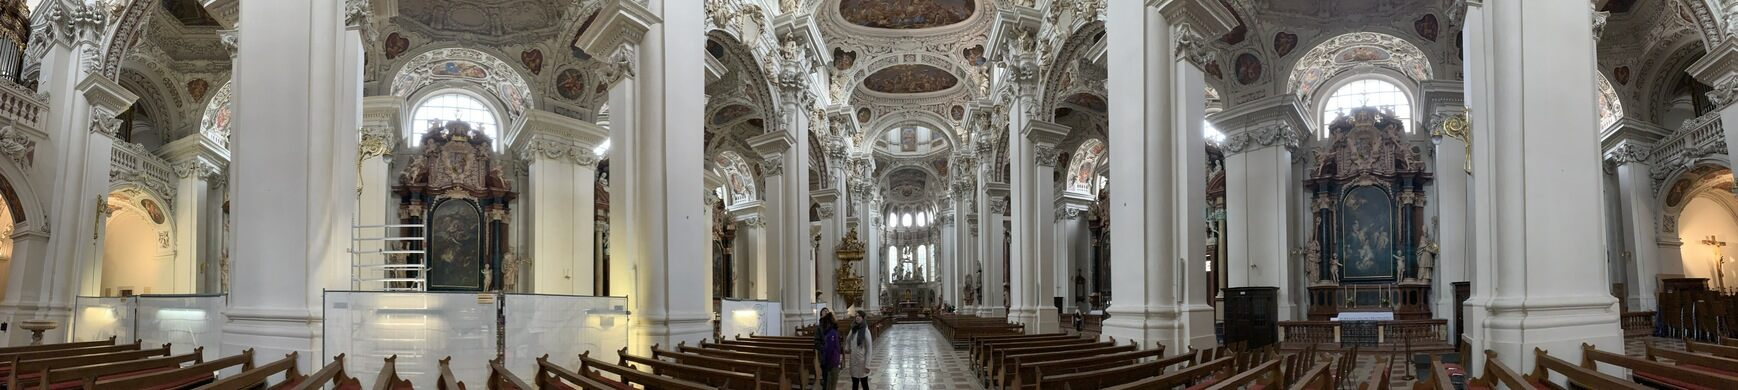 Europe's Largest Pipe Organ – Passau, Germany - Atlas Obscura